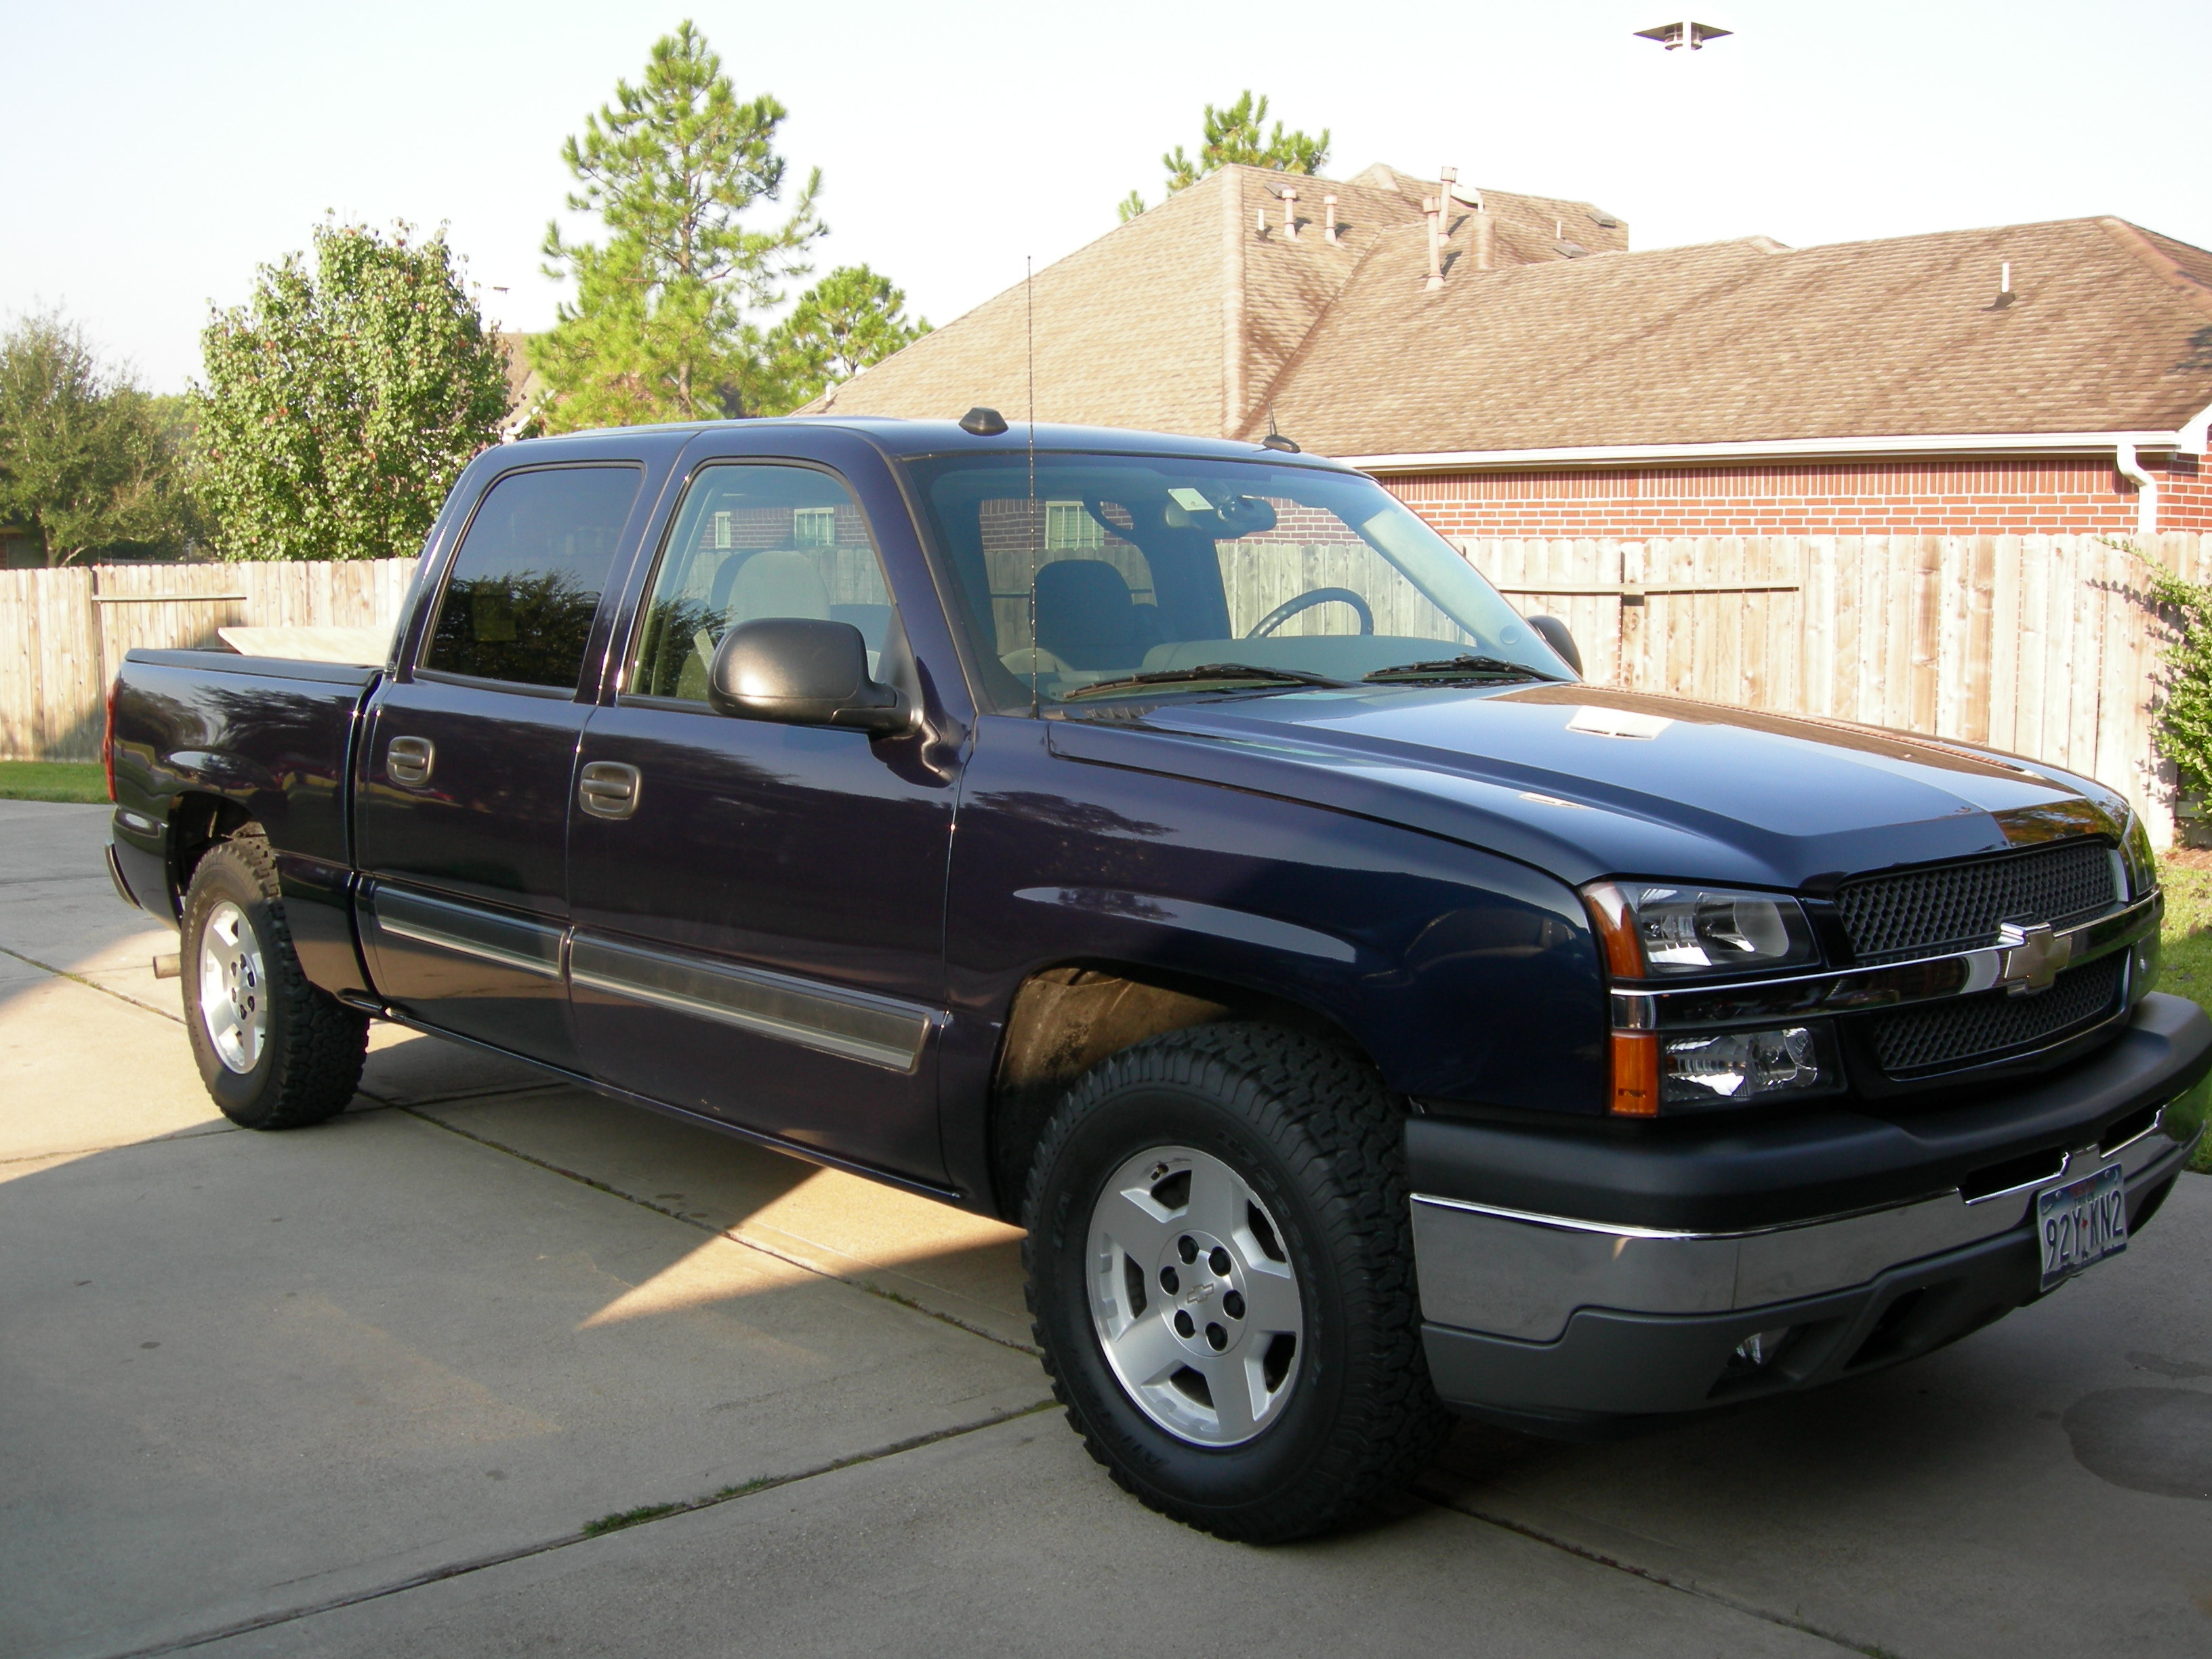 aaronmarker 2005 chevrolet silverado 1500 regular cab specs photos modification info at cardomain. Black Bedroom Furniture Sets. Home Design Ideas